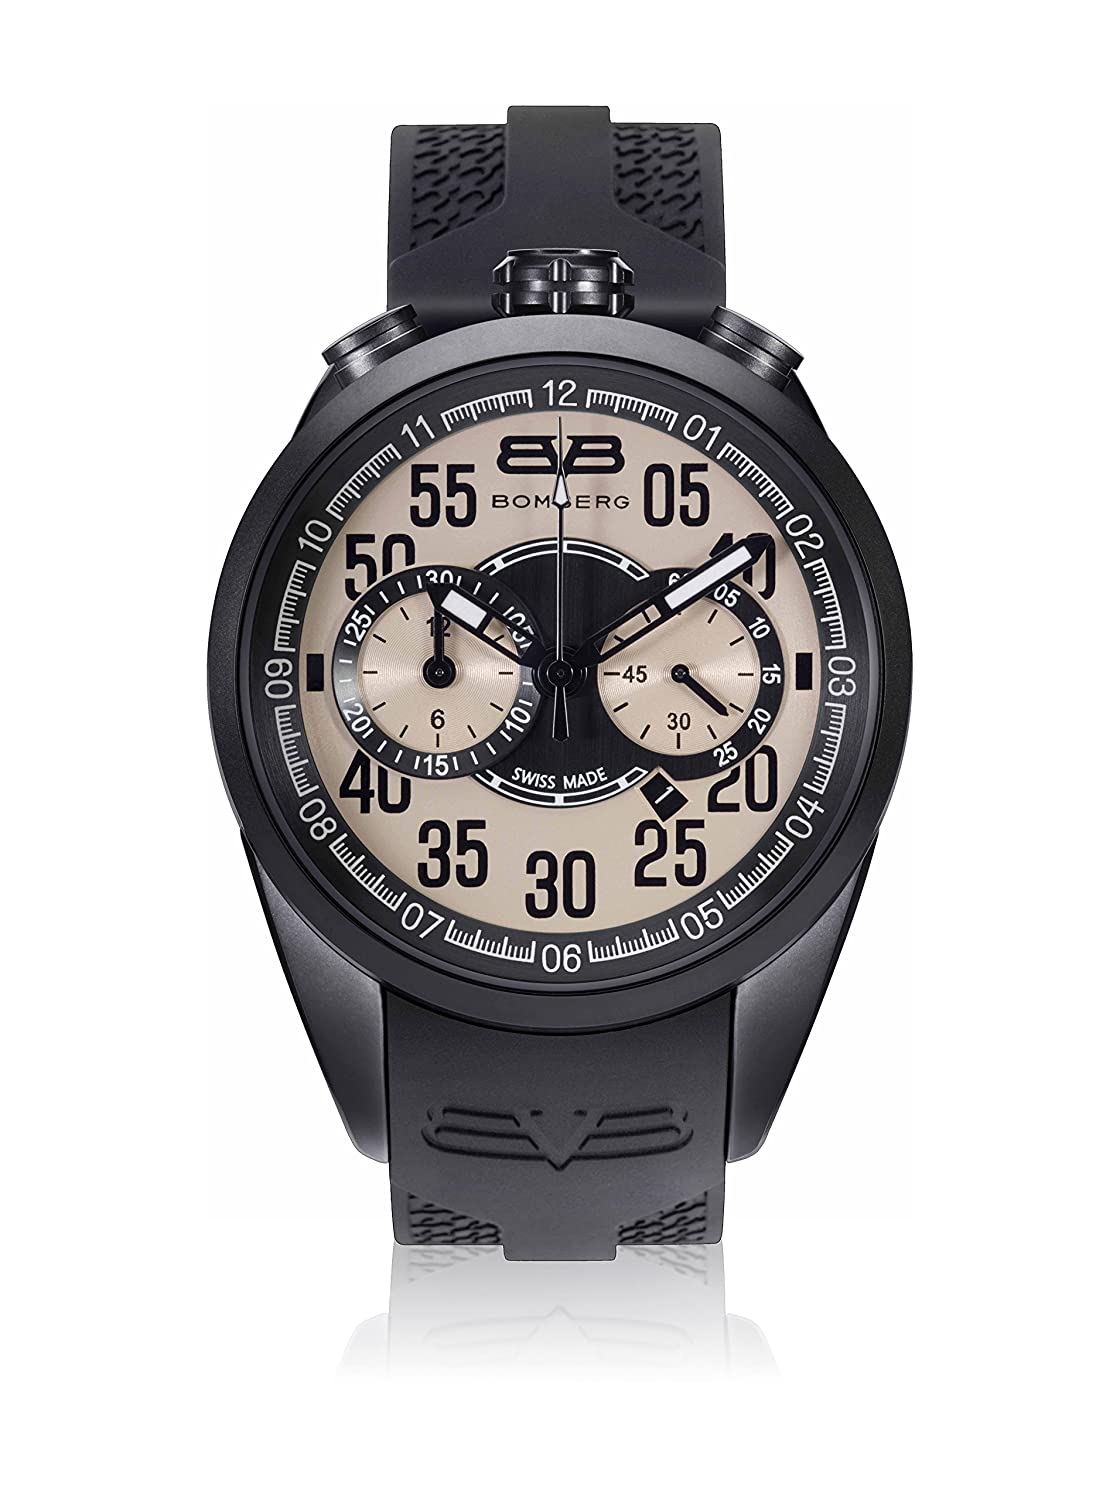 Bomberg NS44CHPBA.0087.2 1968 collection Uhren - Swiss Made - 44 mm